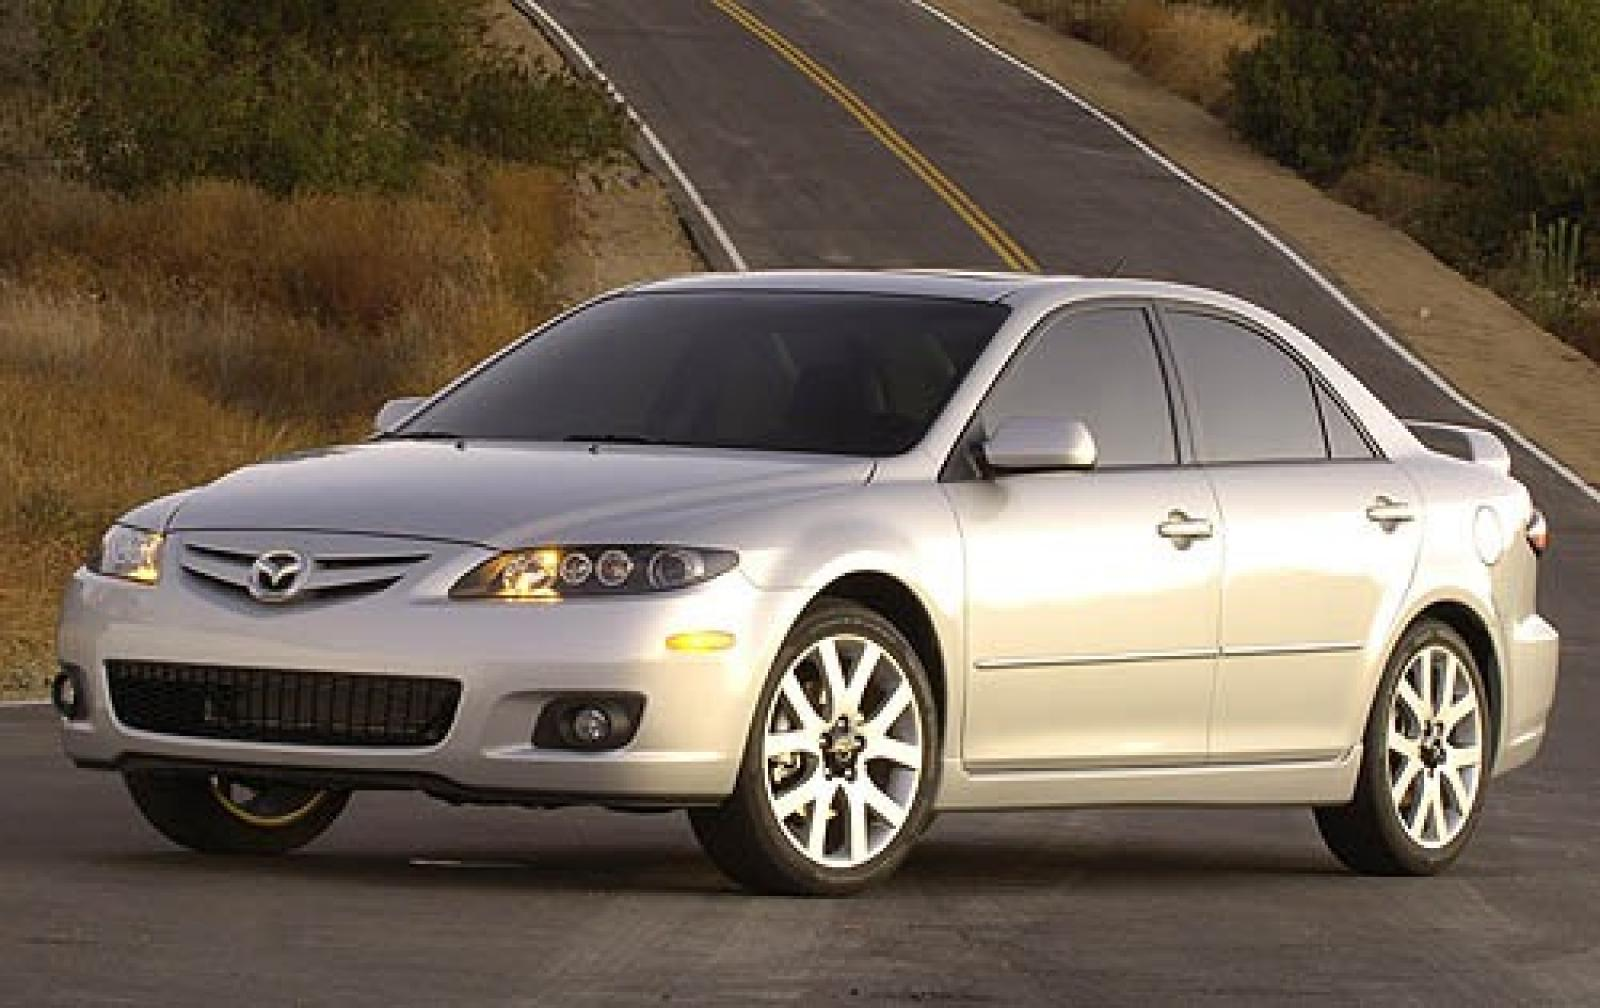 2006 mazda mazda6 information and photos zombiedrive. Black Bedroom Furniture Sets. Home Design Ideas